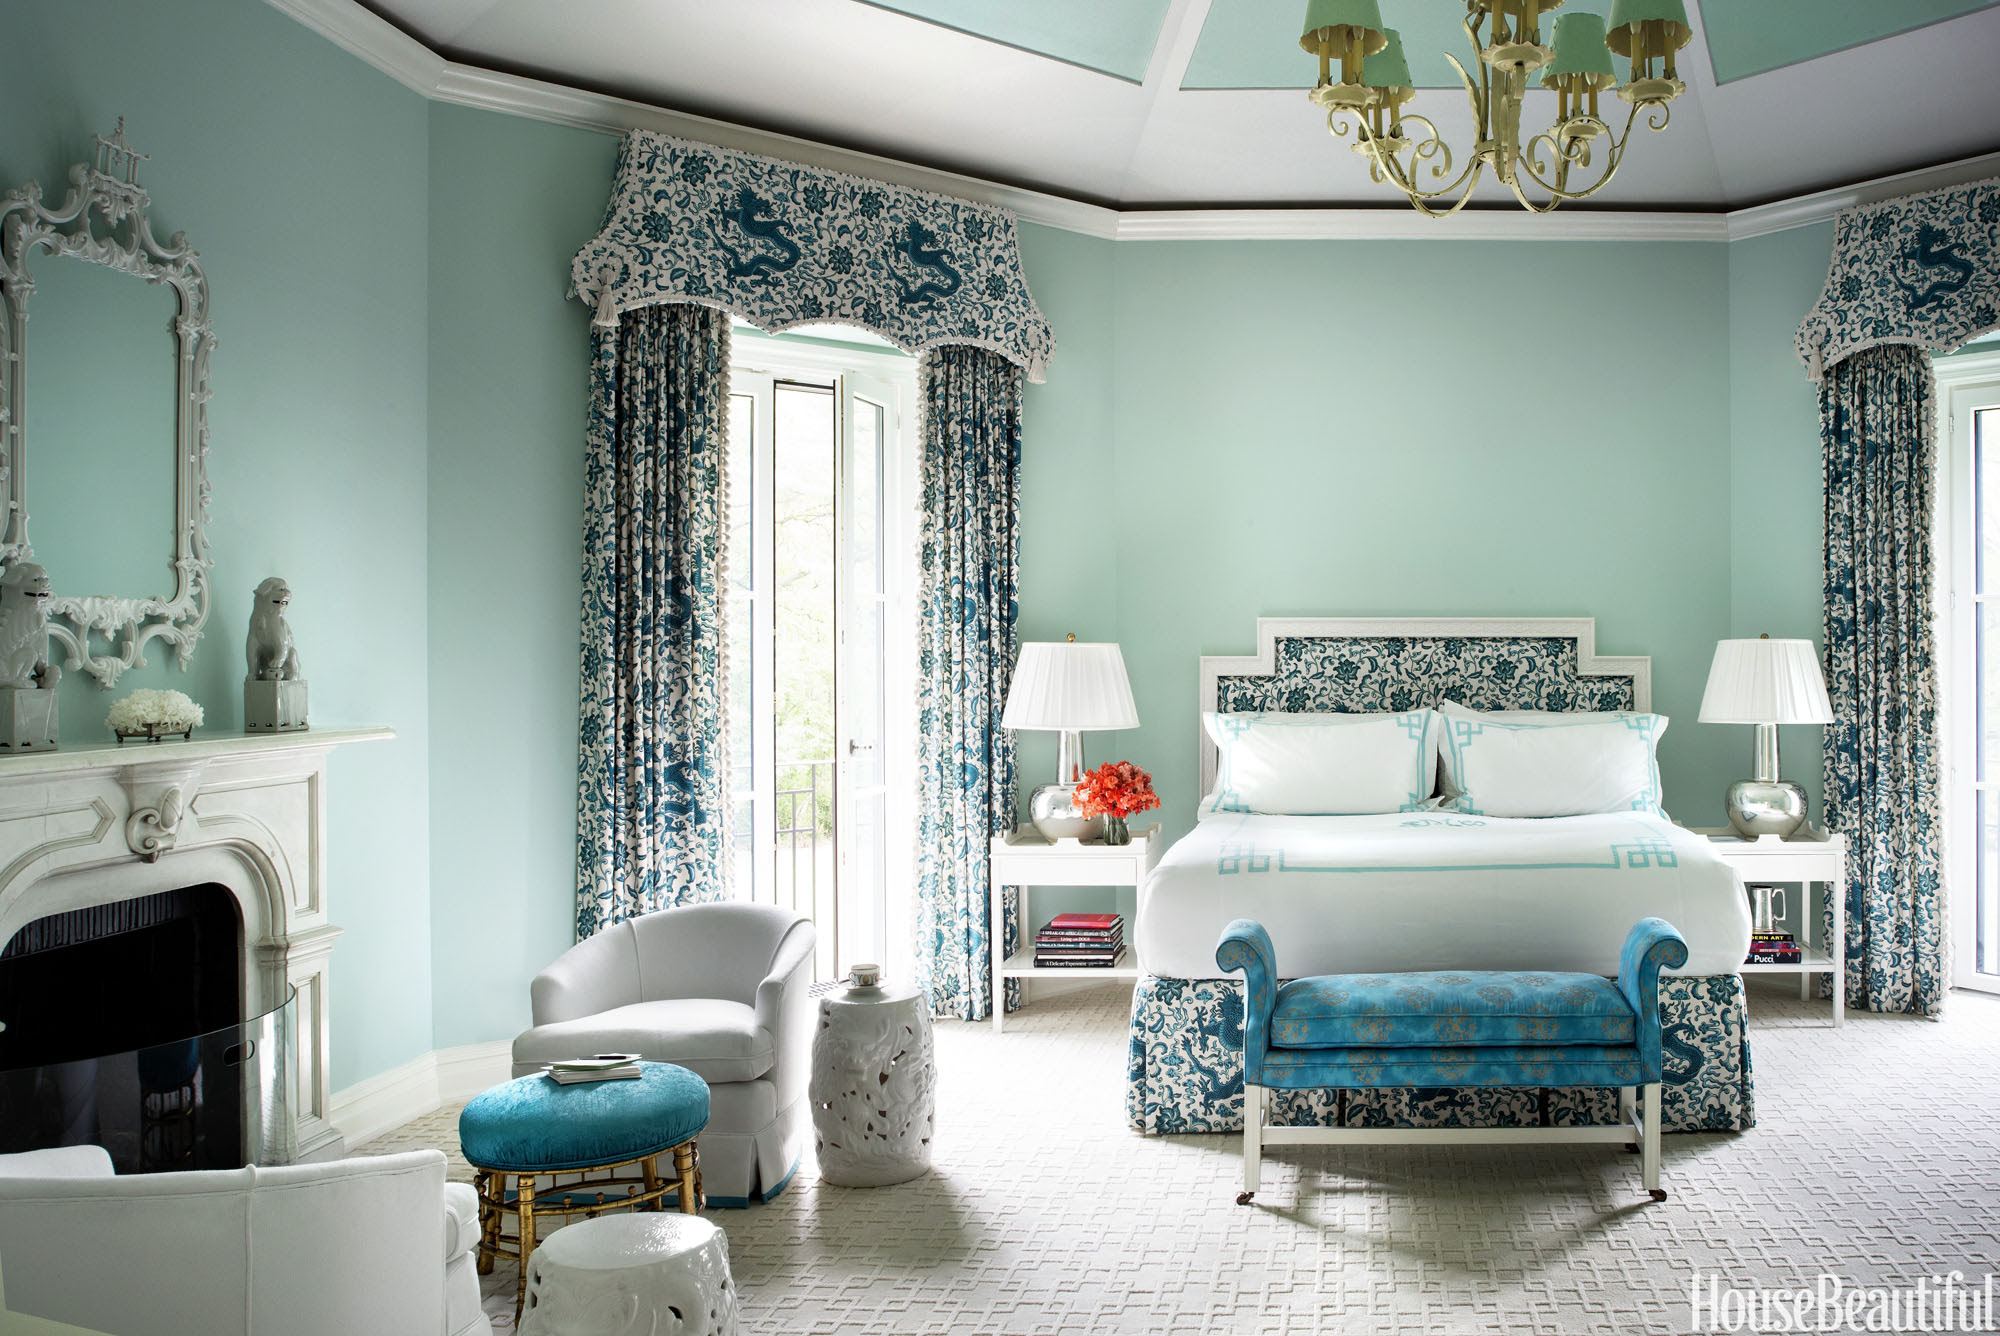 Beautiful Bedrooms by Greg Natale to Inspire You - Decor10 ...